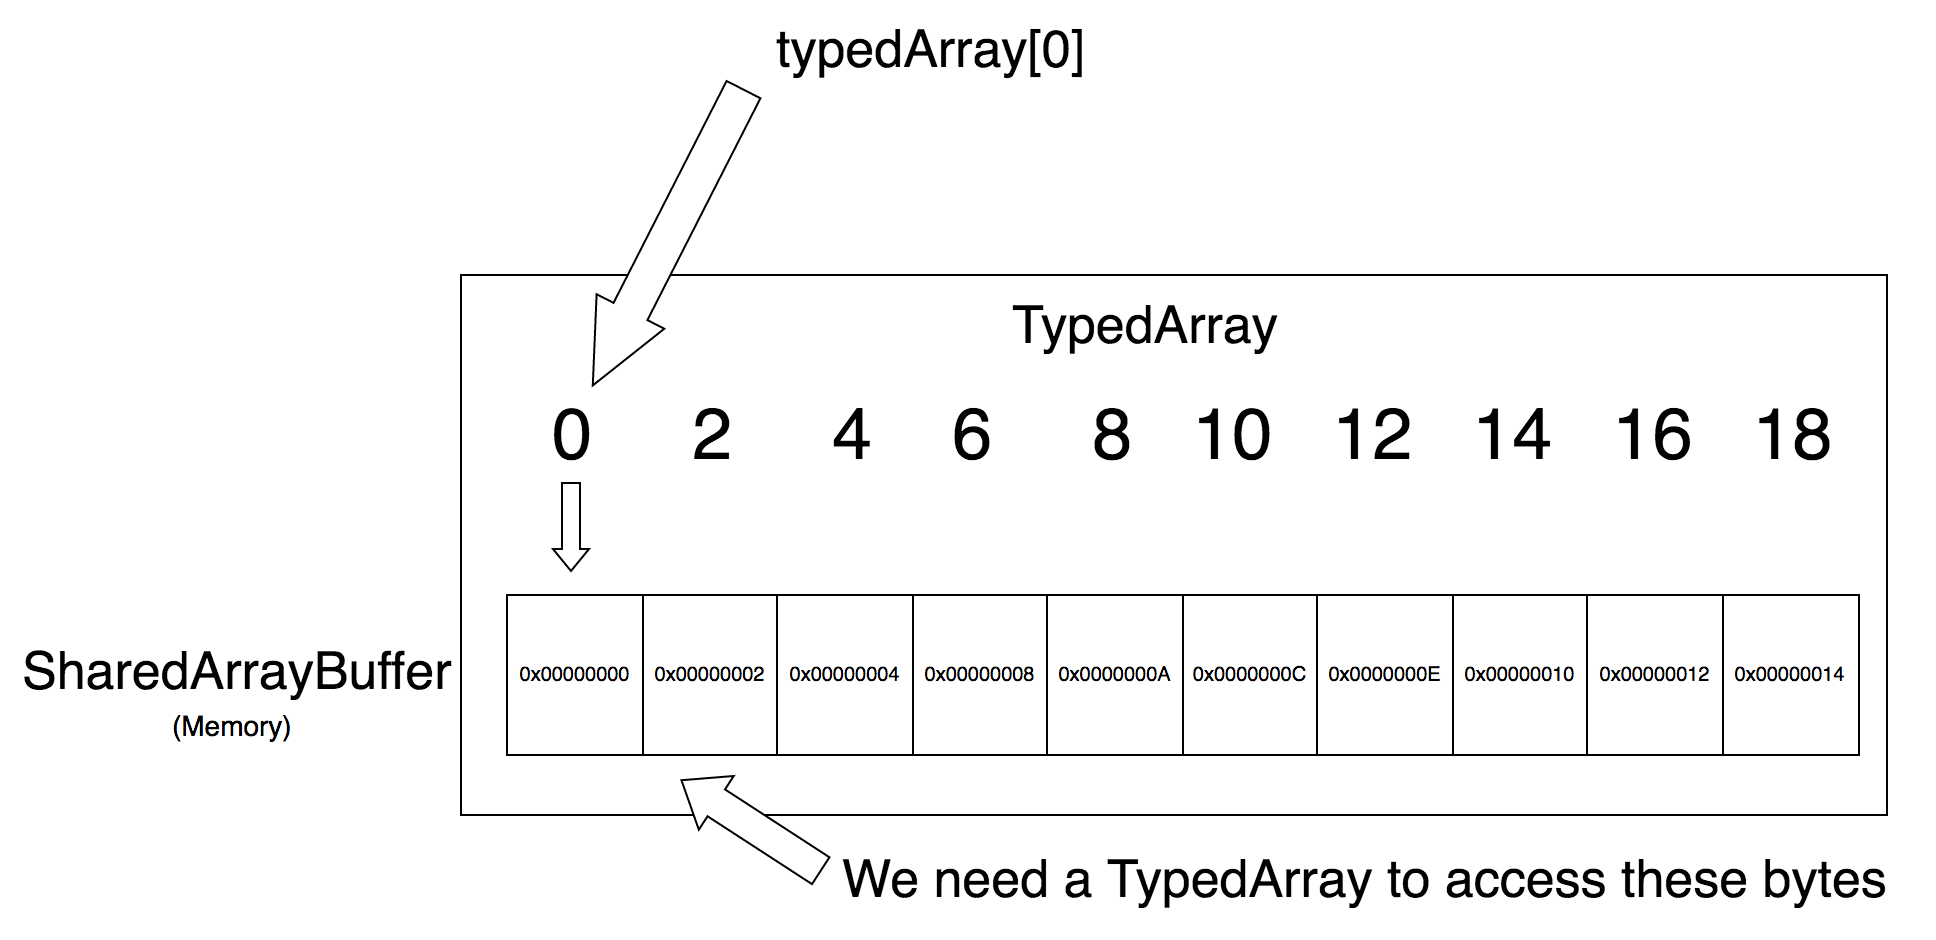 A Typed Array is a view on top of a shared memory area